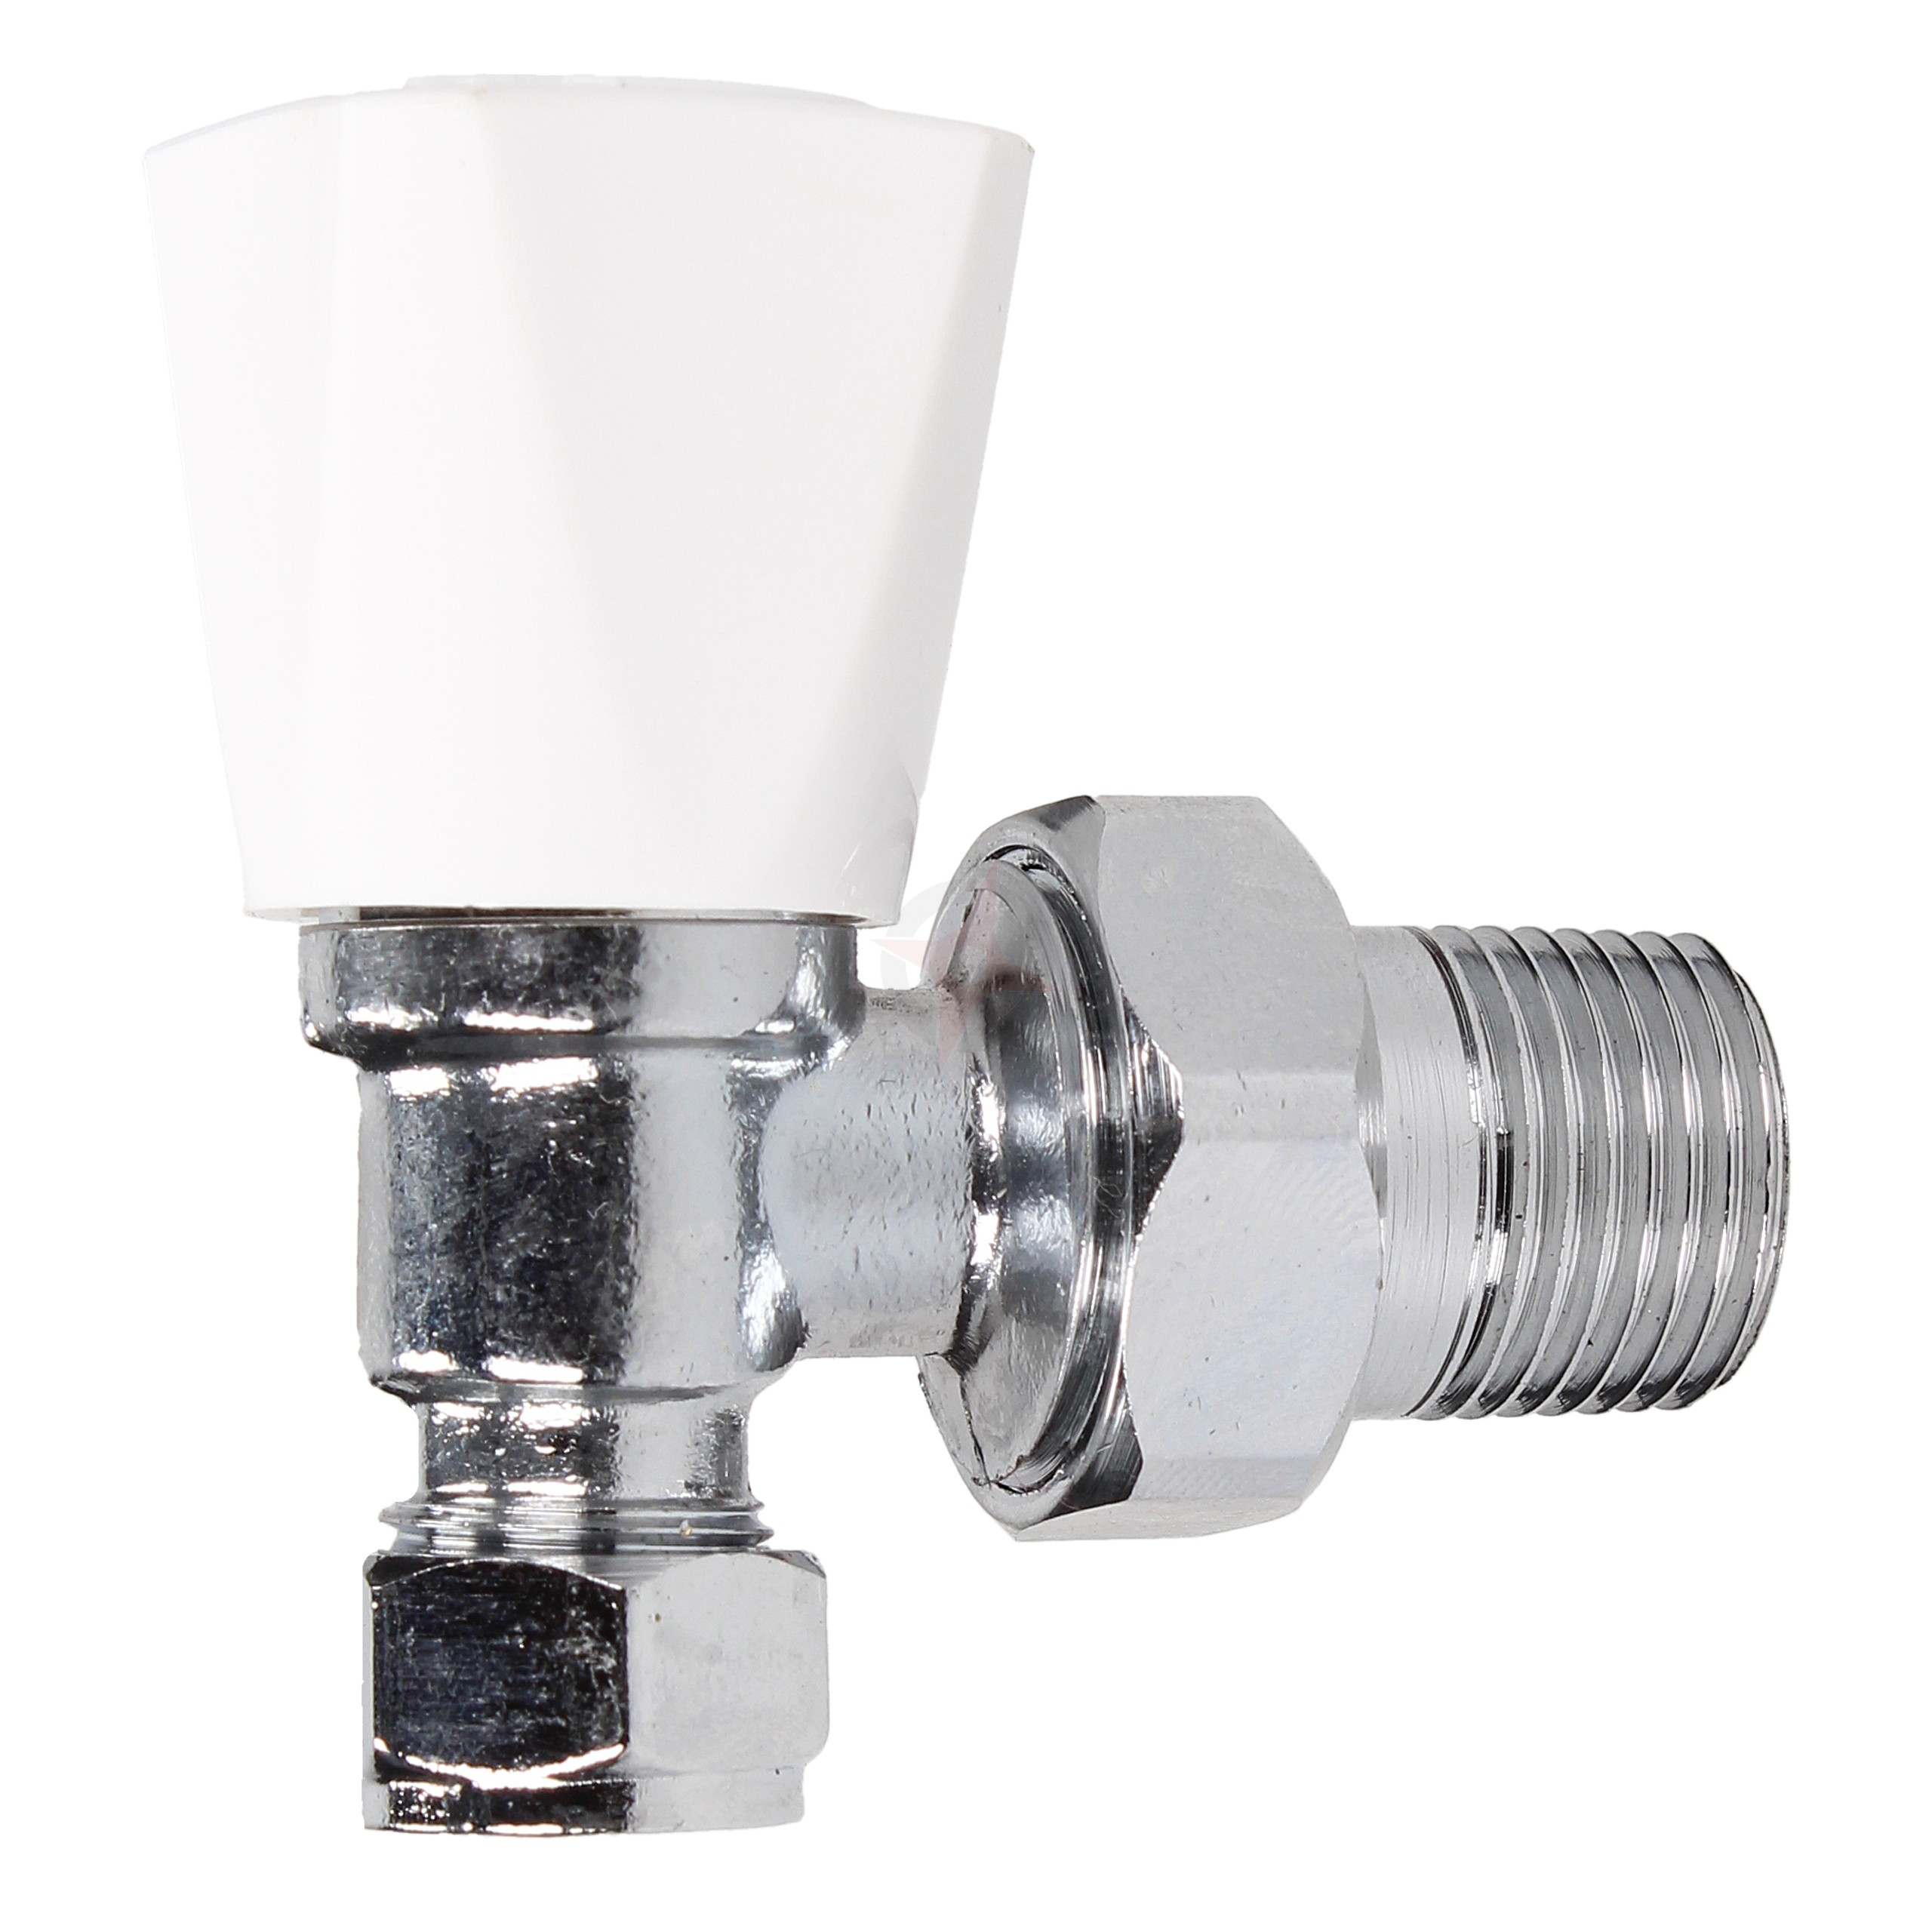 Evolve 10mm Angled Wheel Head Valve